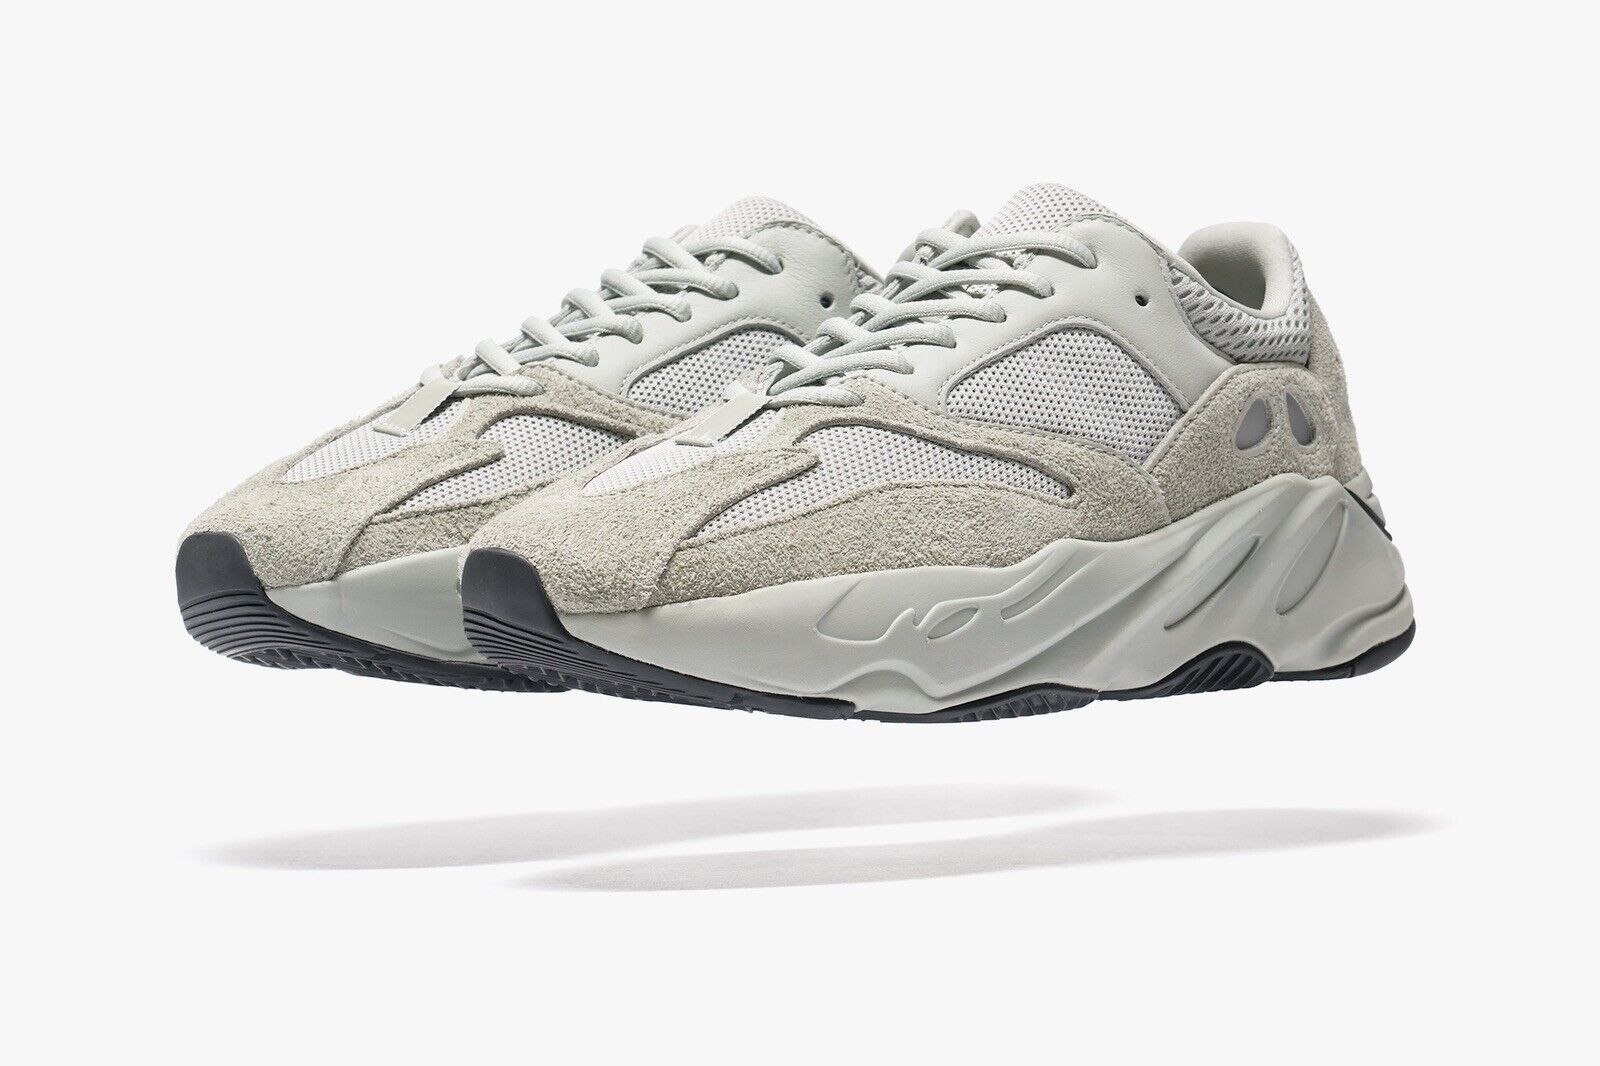 Adidas Yeezy 700 Salt Sz 9.5 EG7487 3m 350 500 reflective static wave runner og